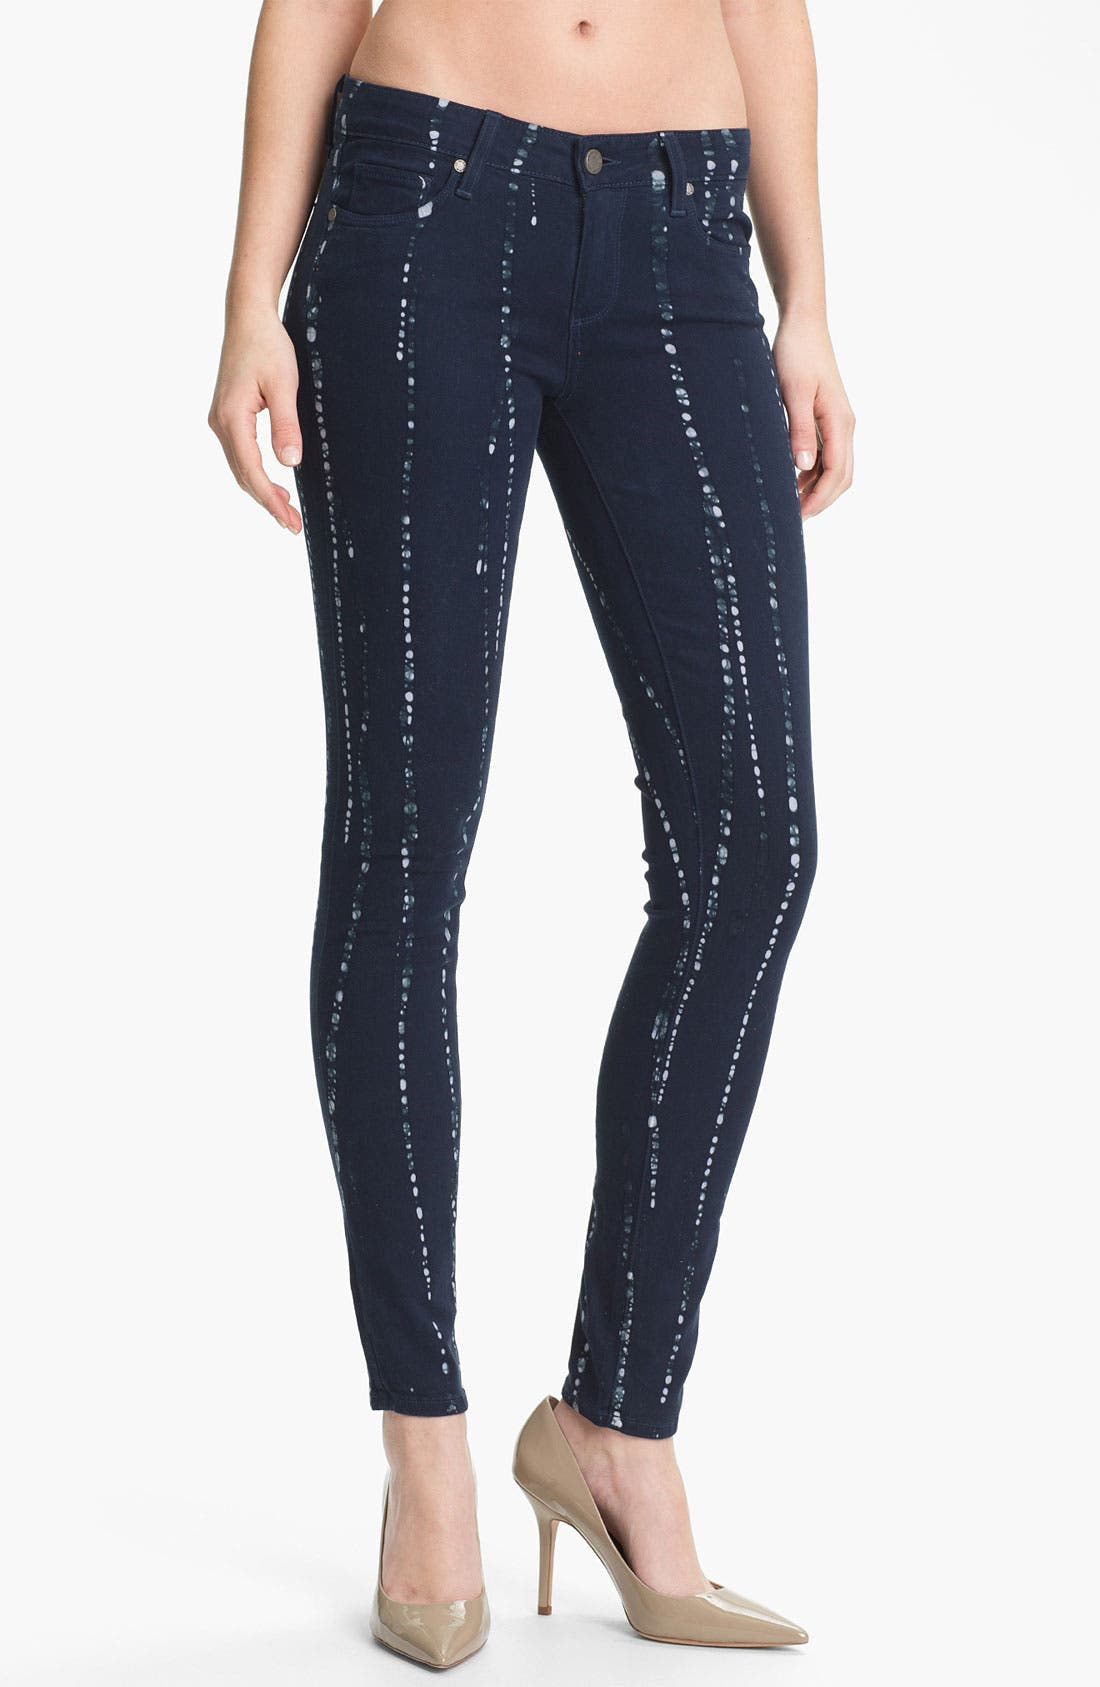 Alternate Image 1 Selected - Paige Denim 'Verdugo' Print Skinny Jeans (Summer Night Batik)